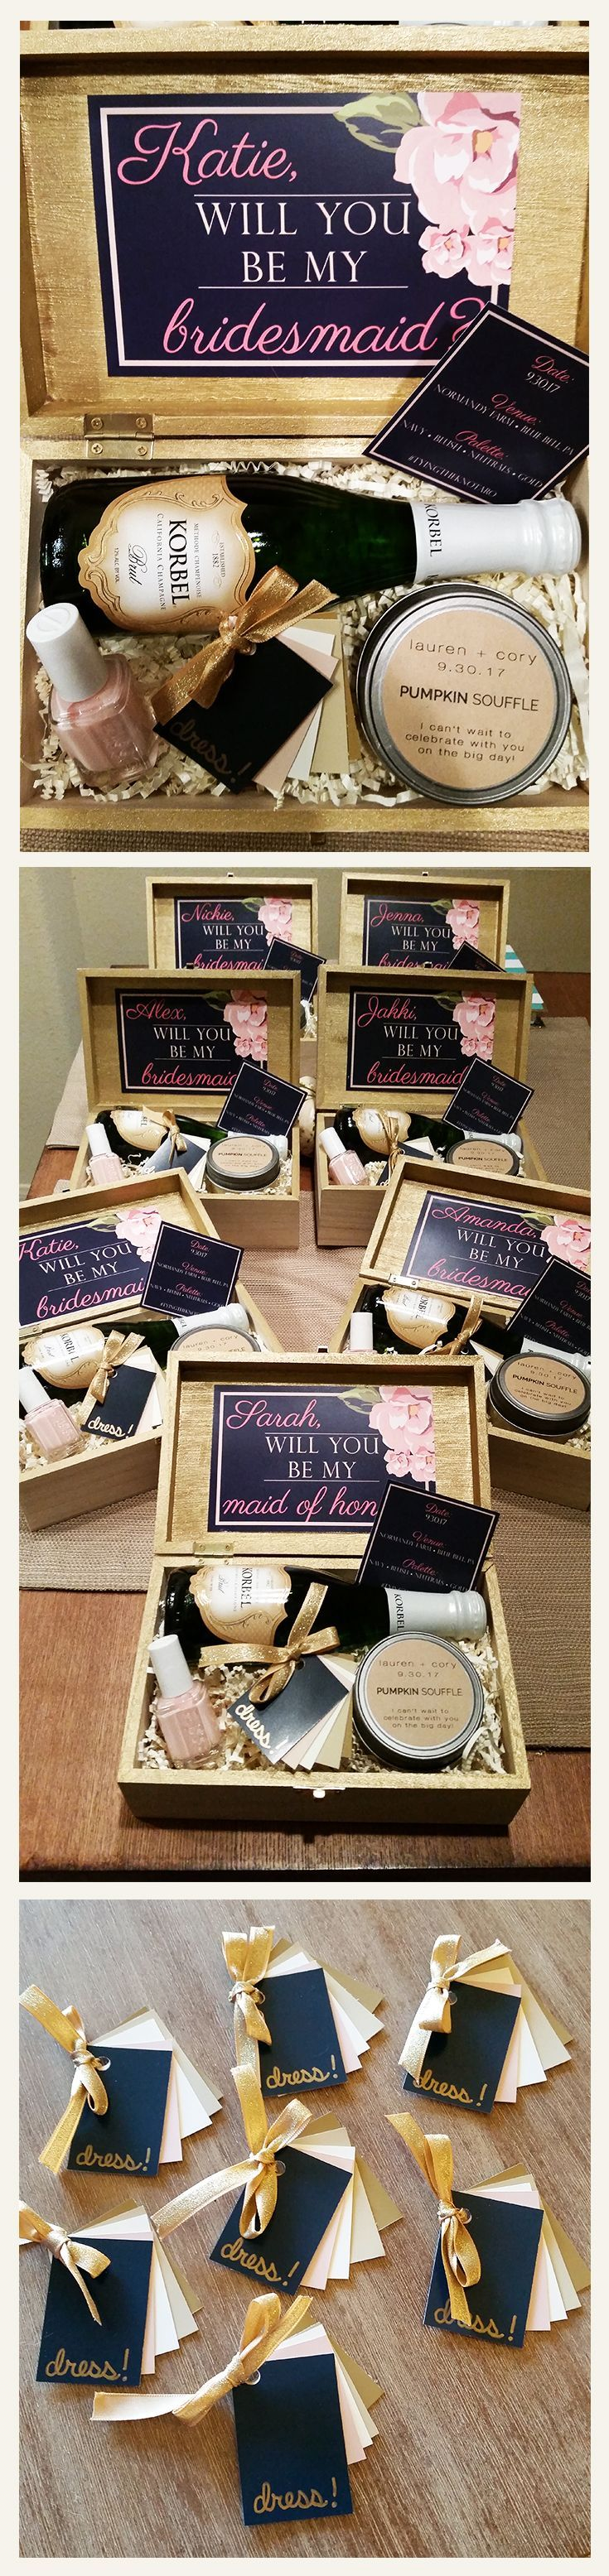 bridesmaid invitation boxes - all you need is a craft store,  paint samples, some patience, and a lot of wine. click for link to custom label candles from Ellery Mae Candles on Etsy.  It would be such fun shopping for the goodies that go into these lovely gift boxes.